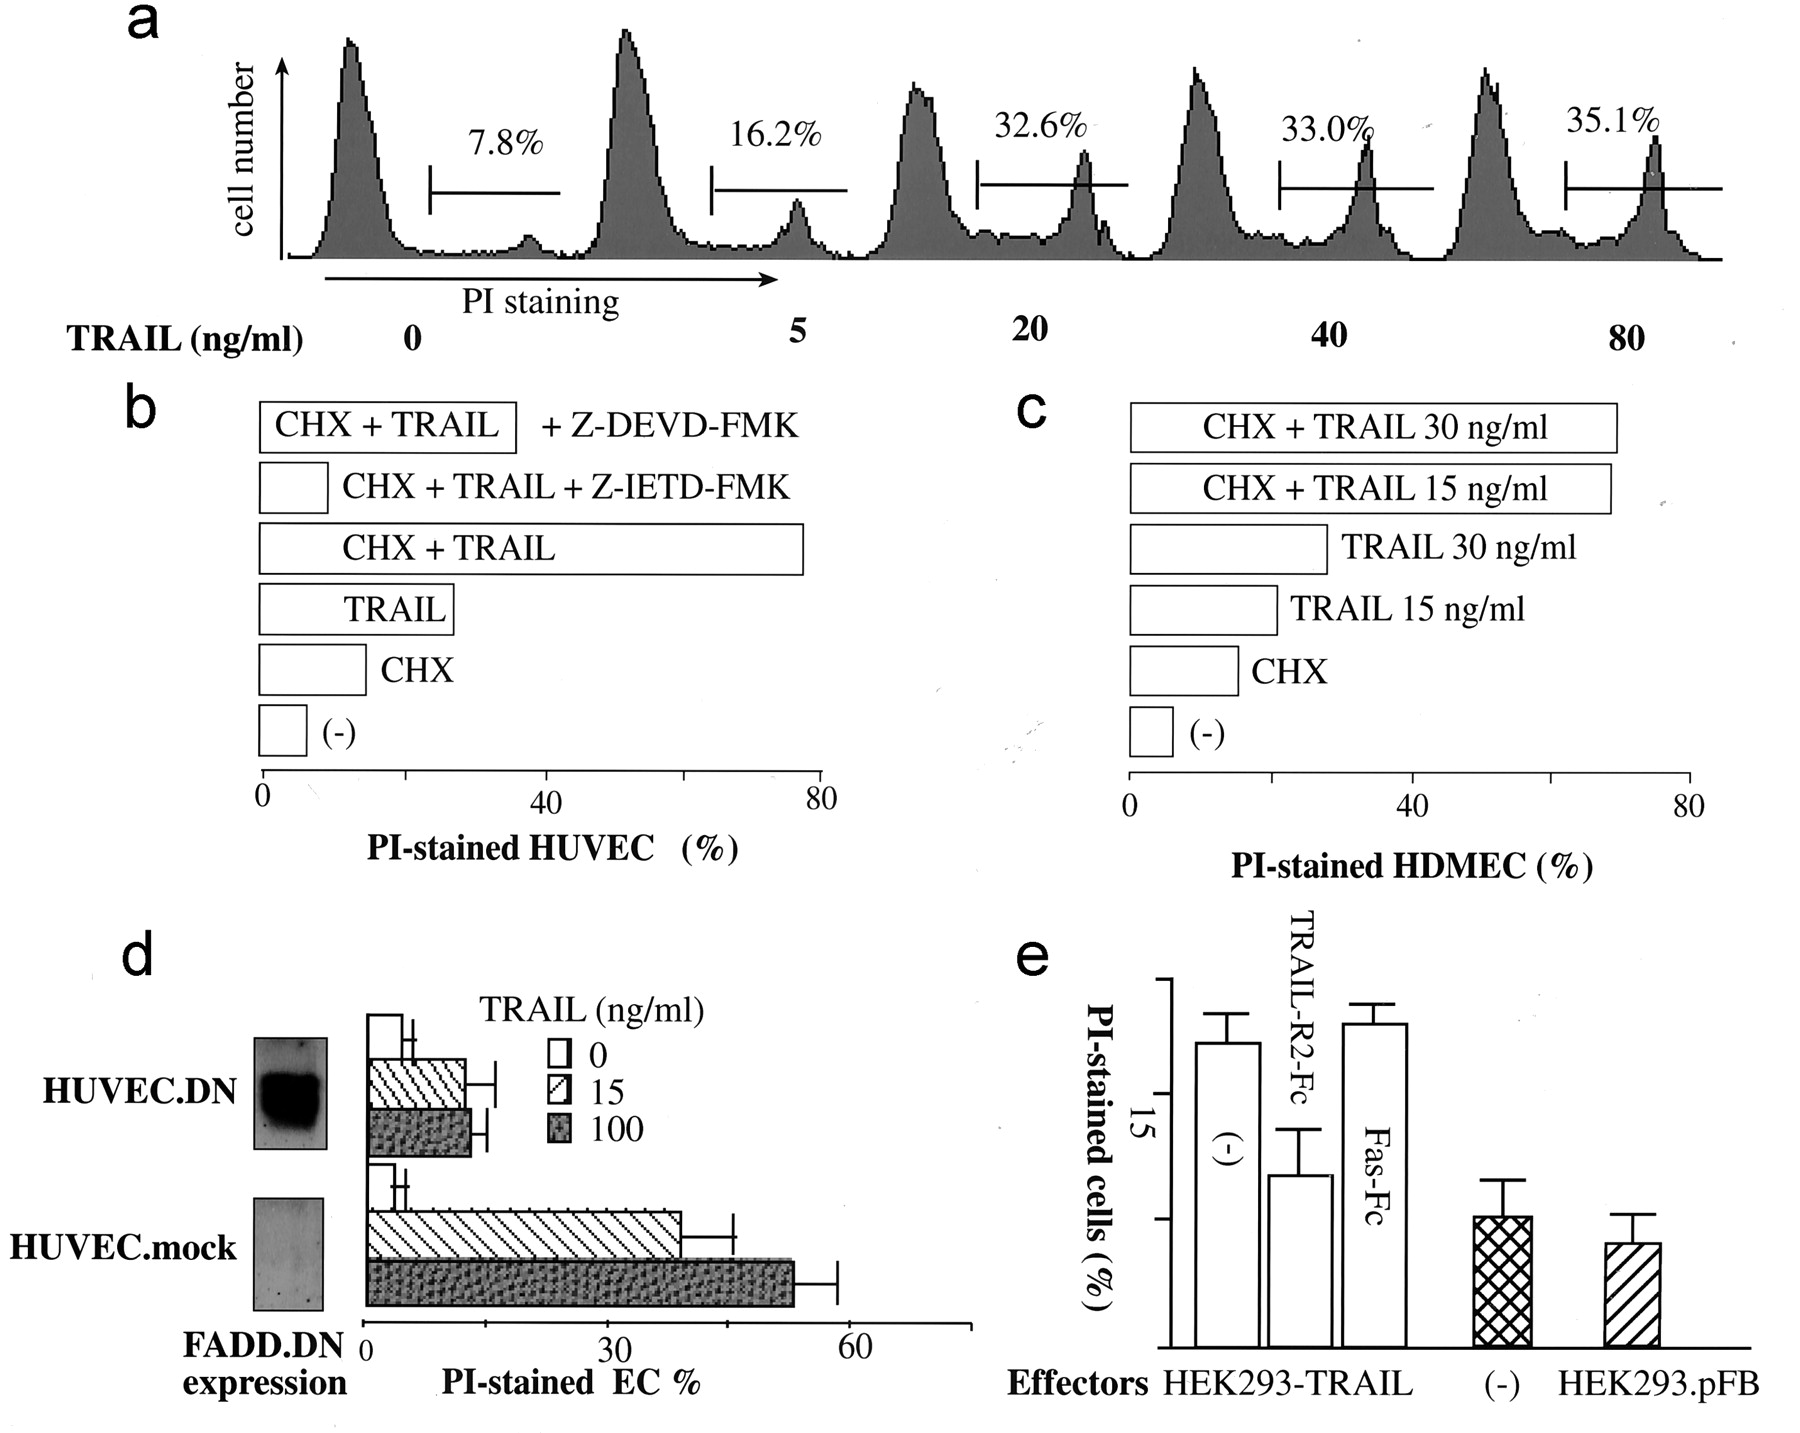 TRAIL Induces Apoptosis and Inflammatory Gene Expression in